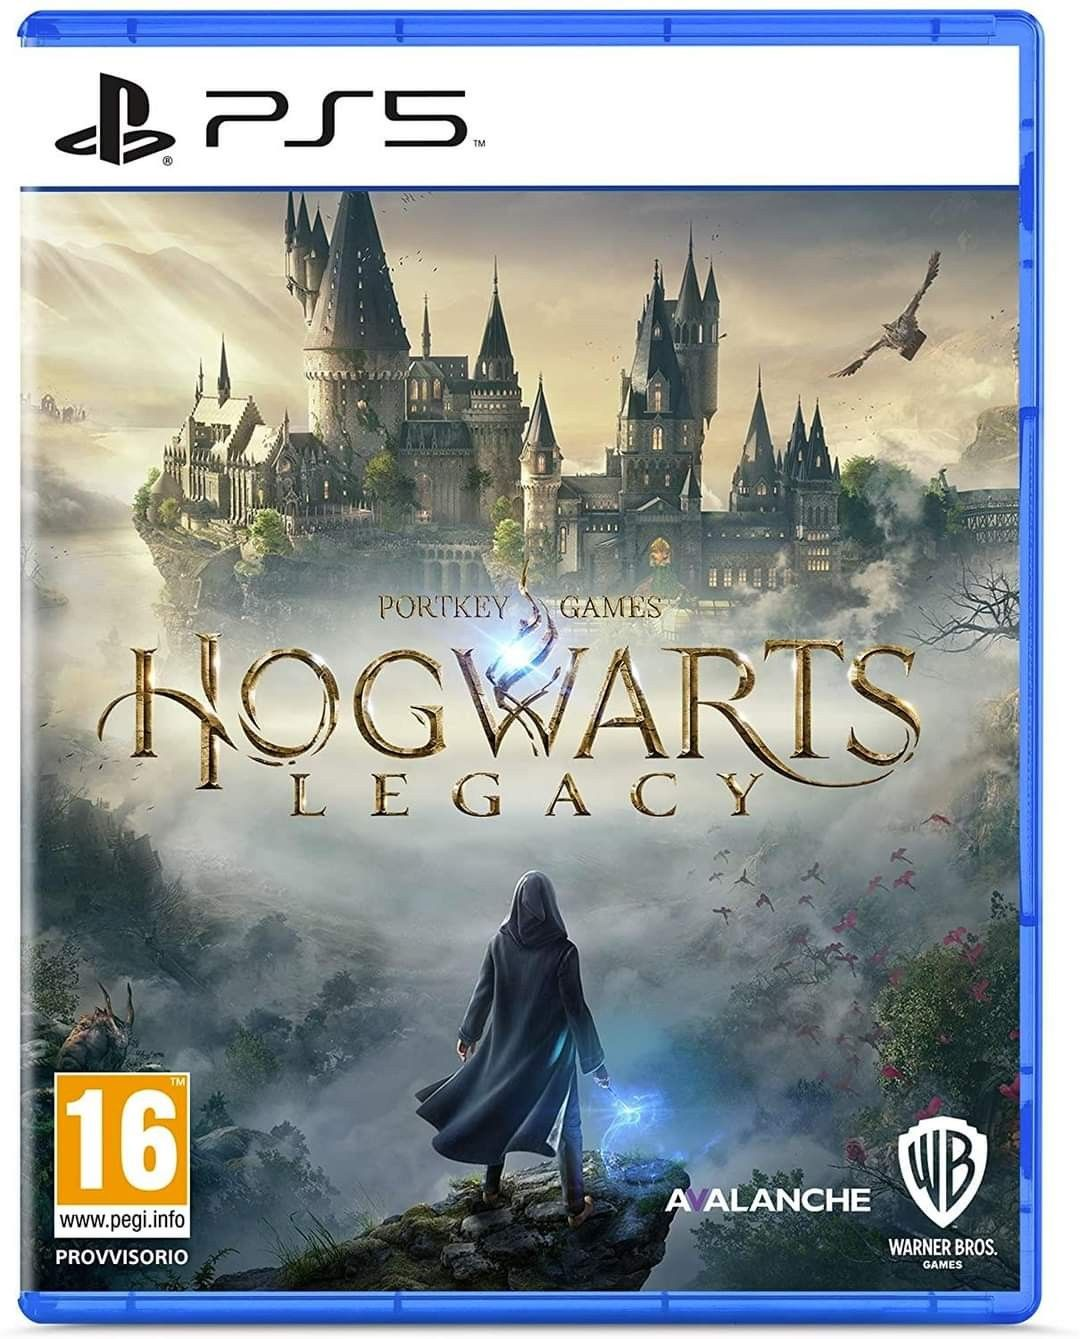 Pin By Manuel Mazza On Giochi Ps4 E Ps5 Hogwarts Video Games Xbox Xbox One Games